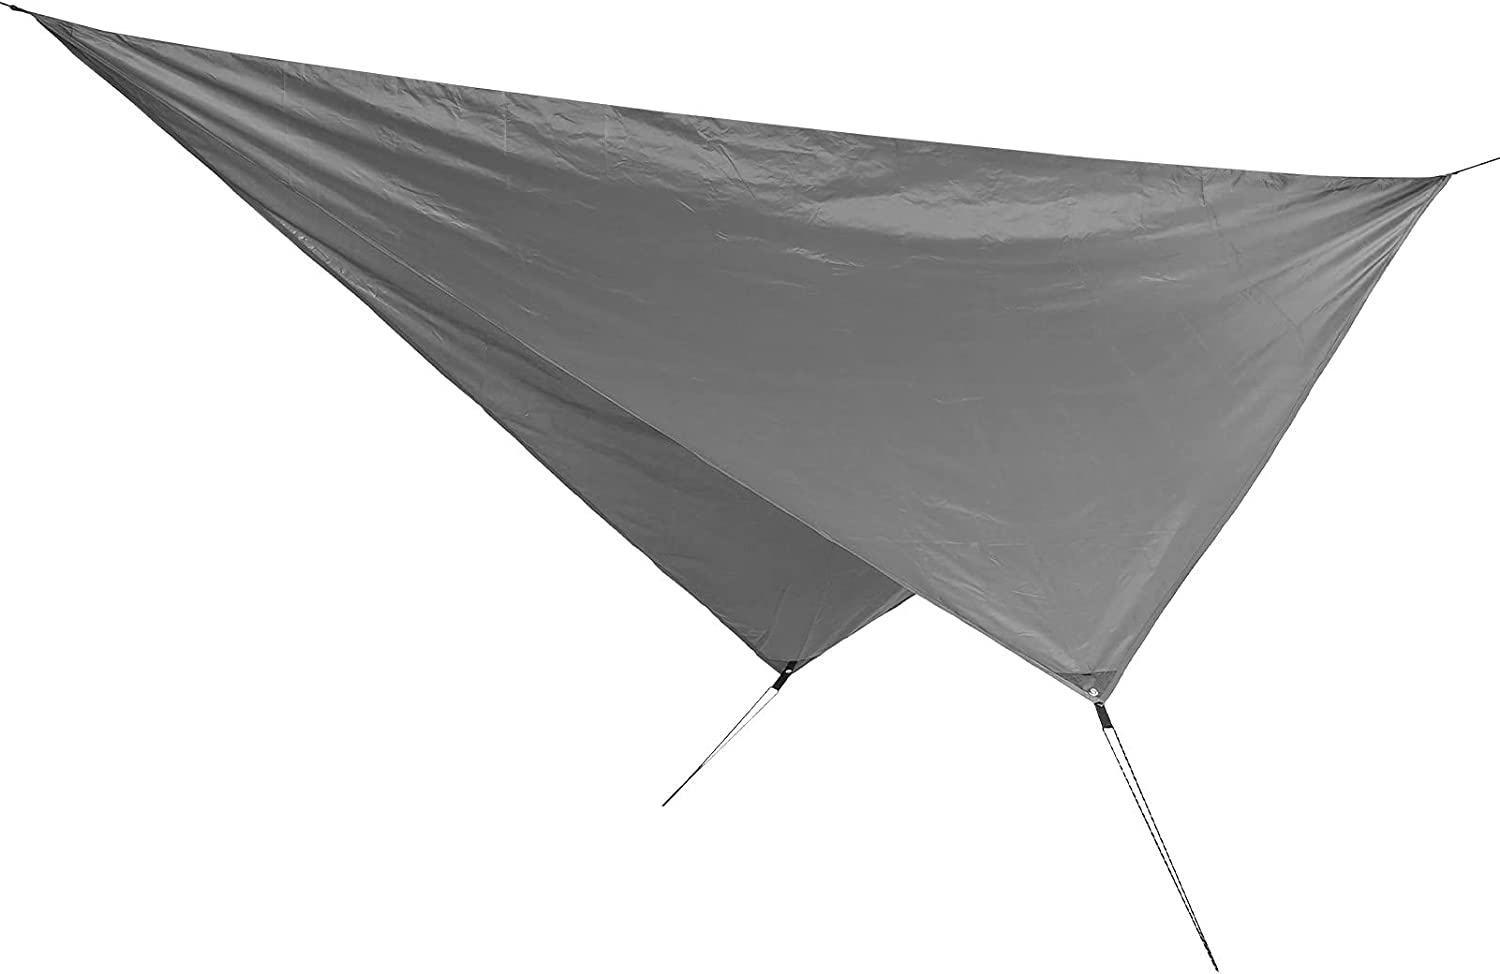 Andrew Camping Tarp Raleigh Mall Stable Free shipping on posting reviews Proof Portable Compact Water